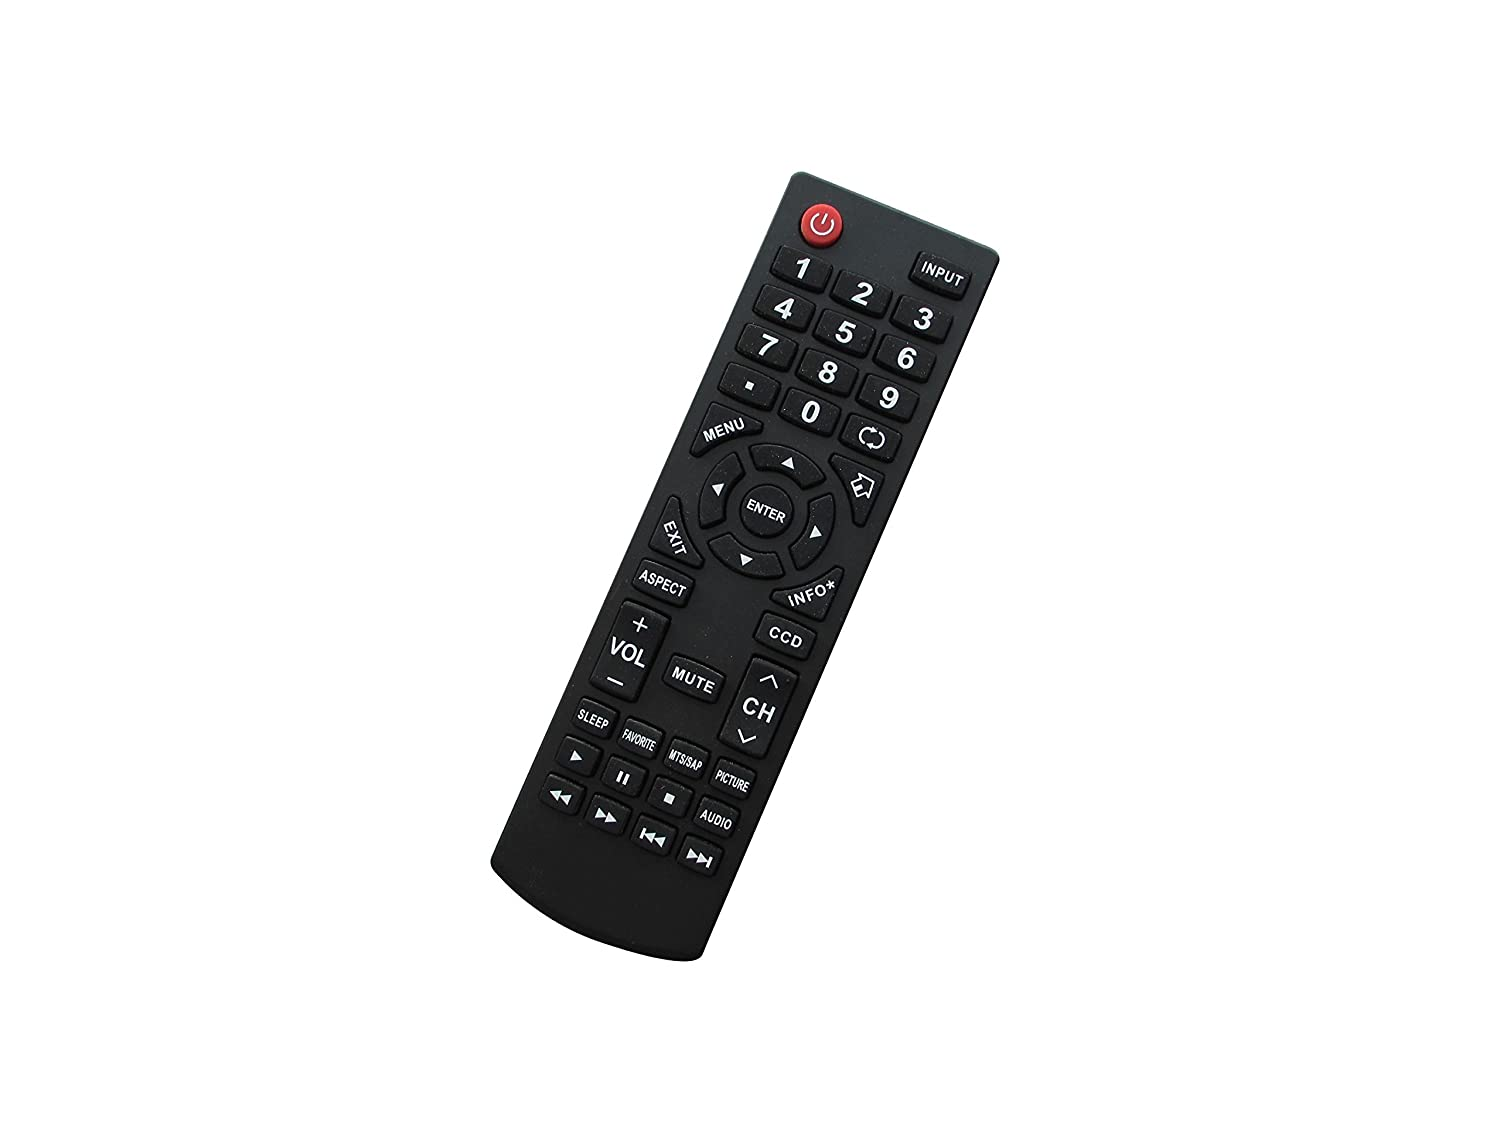 Amazon.com: Replacement Remote Control Fit For Dynex DX-15E220A12 DX-L19-10A  DX-L15-10A DX-L321-10A LCD LED HDTV TV: Electronics